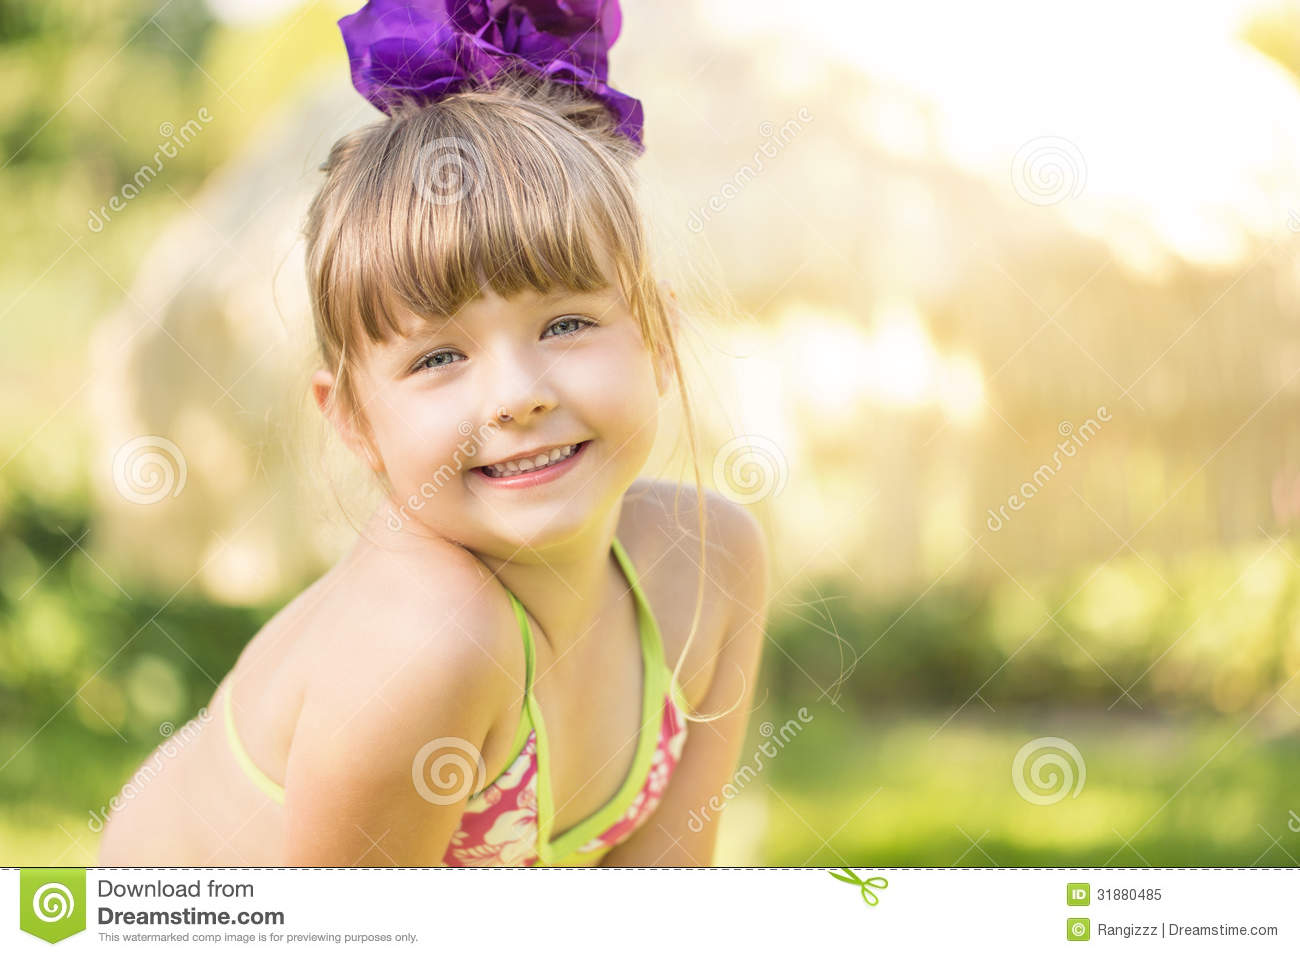 Cute Little Girl Royalty Free Stock Photo Image 31880485